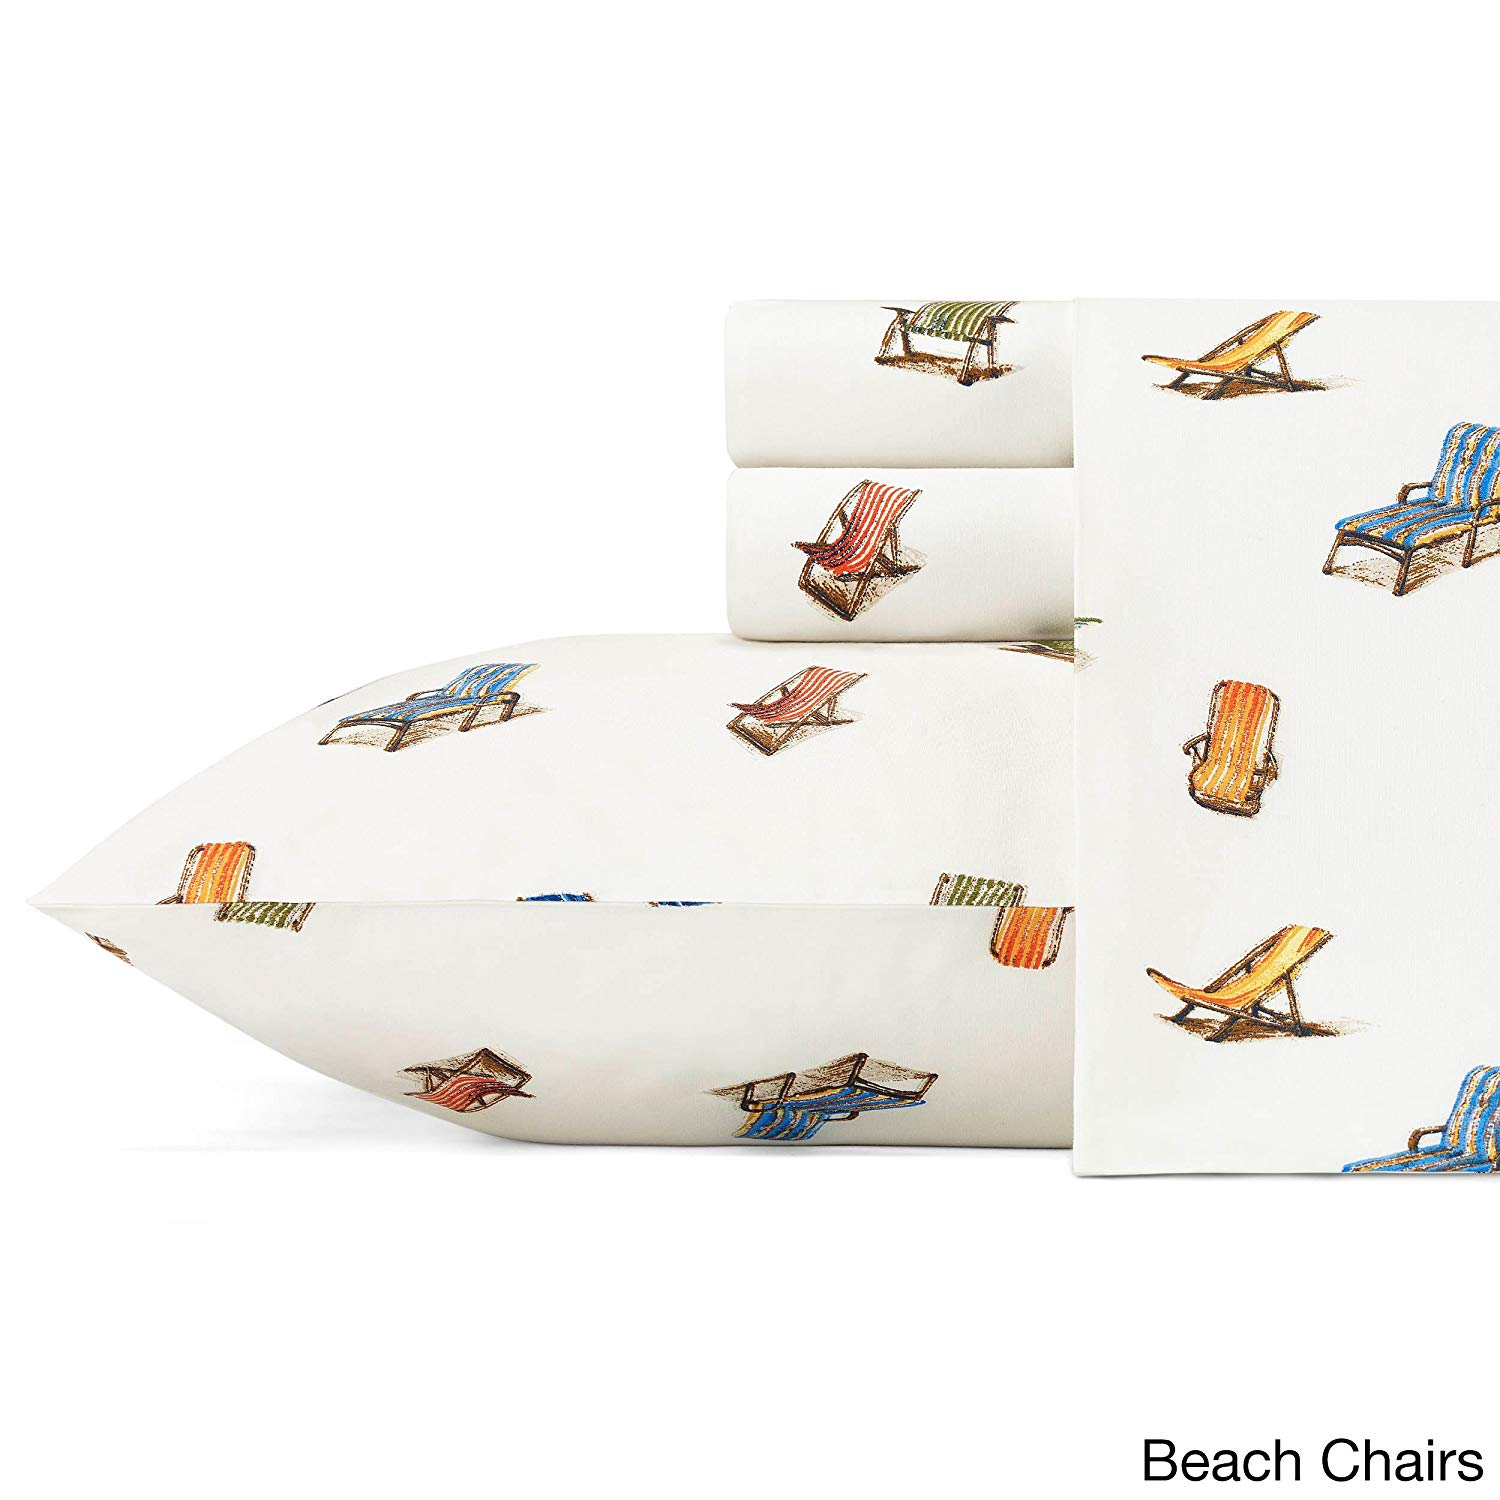 CA 4 Piece Off White Beach Chairs Sheet Set Queen Sized, Lounge Chair Bedding Ocean Themed Nautical Tropical Vacation Print Relax Fun Orange Blue Red Green Brown, Cotton Percale